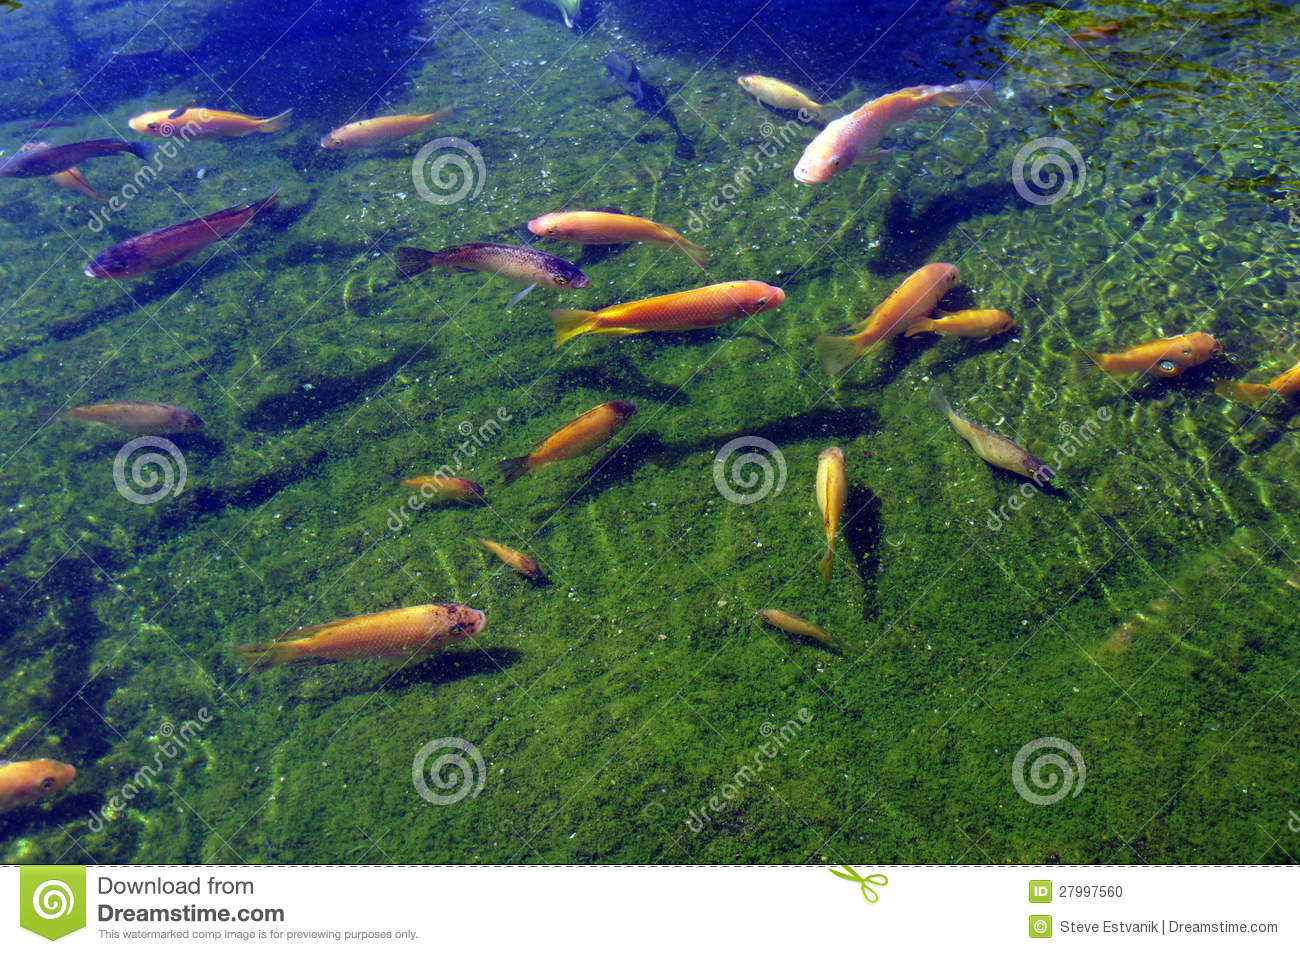 Koi carp swimming in shallow pool stock photo image of for Pool koi aquatics ltd